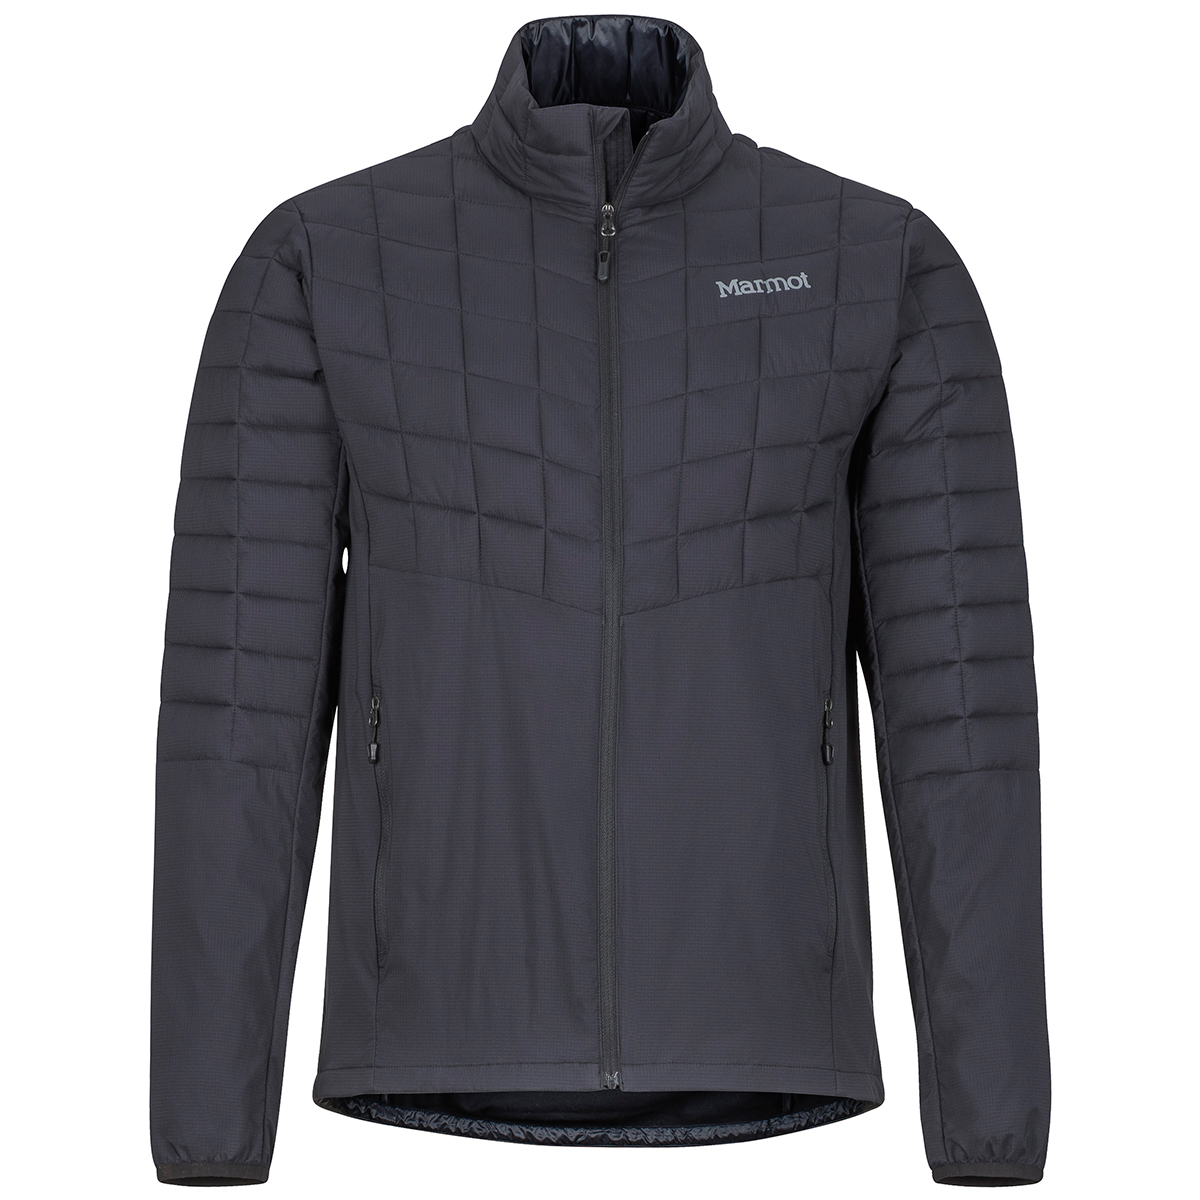 Marmot Men's Featherless Hybrid Jacket - Black, XL